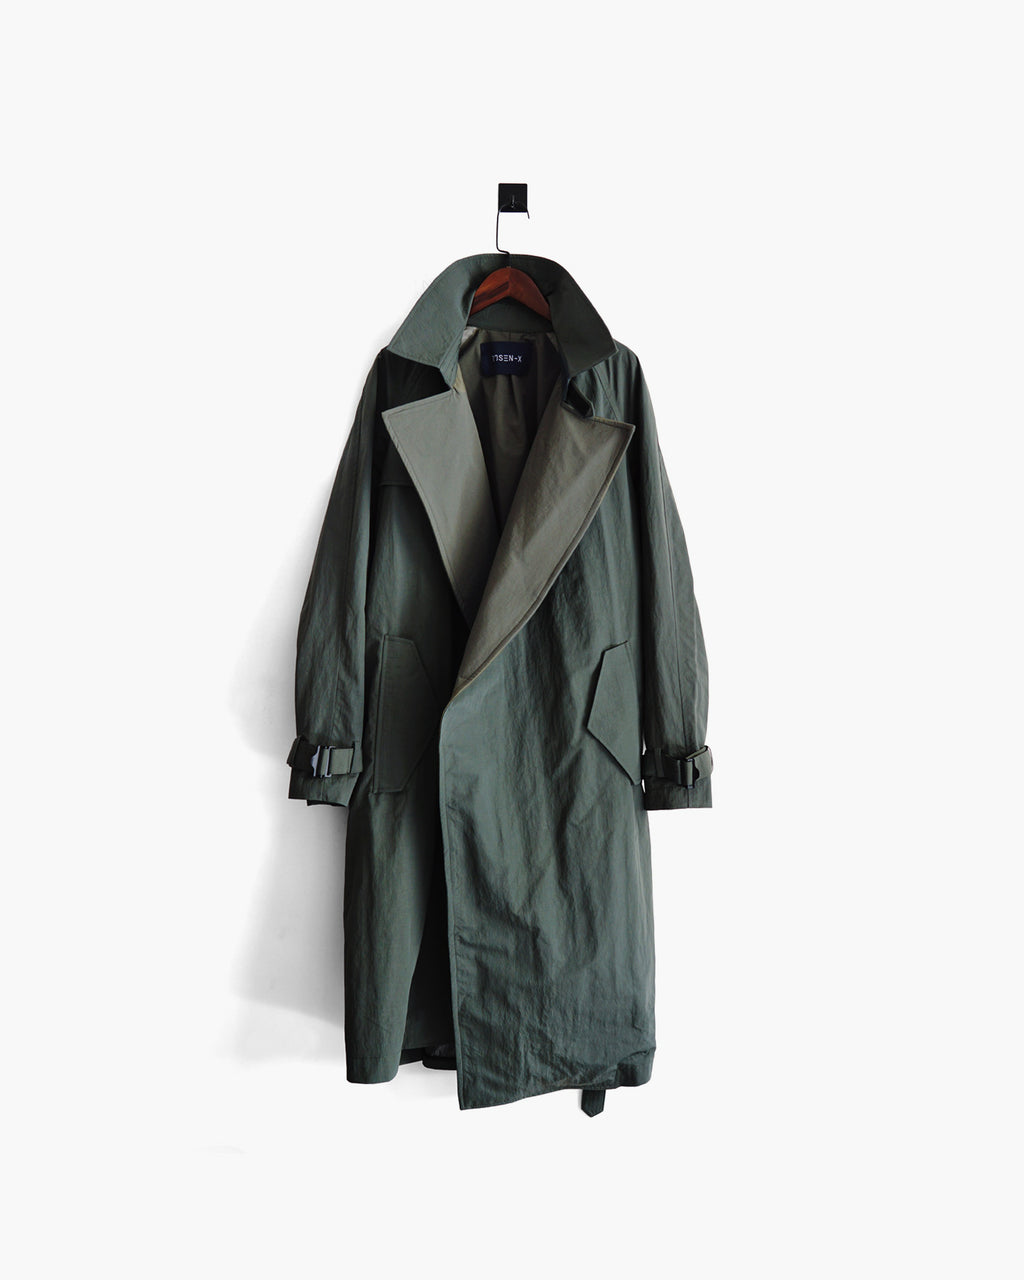 ROSEN-X Atlas Coat in Nylon Laminate Sz 2